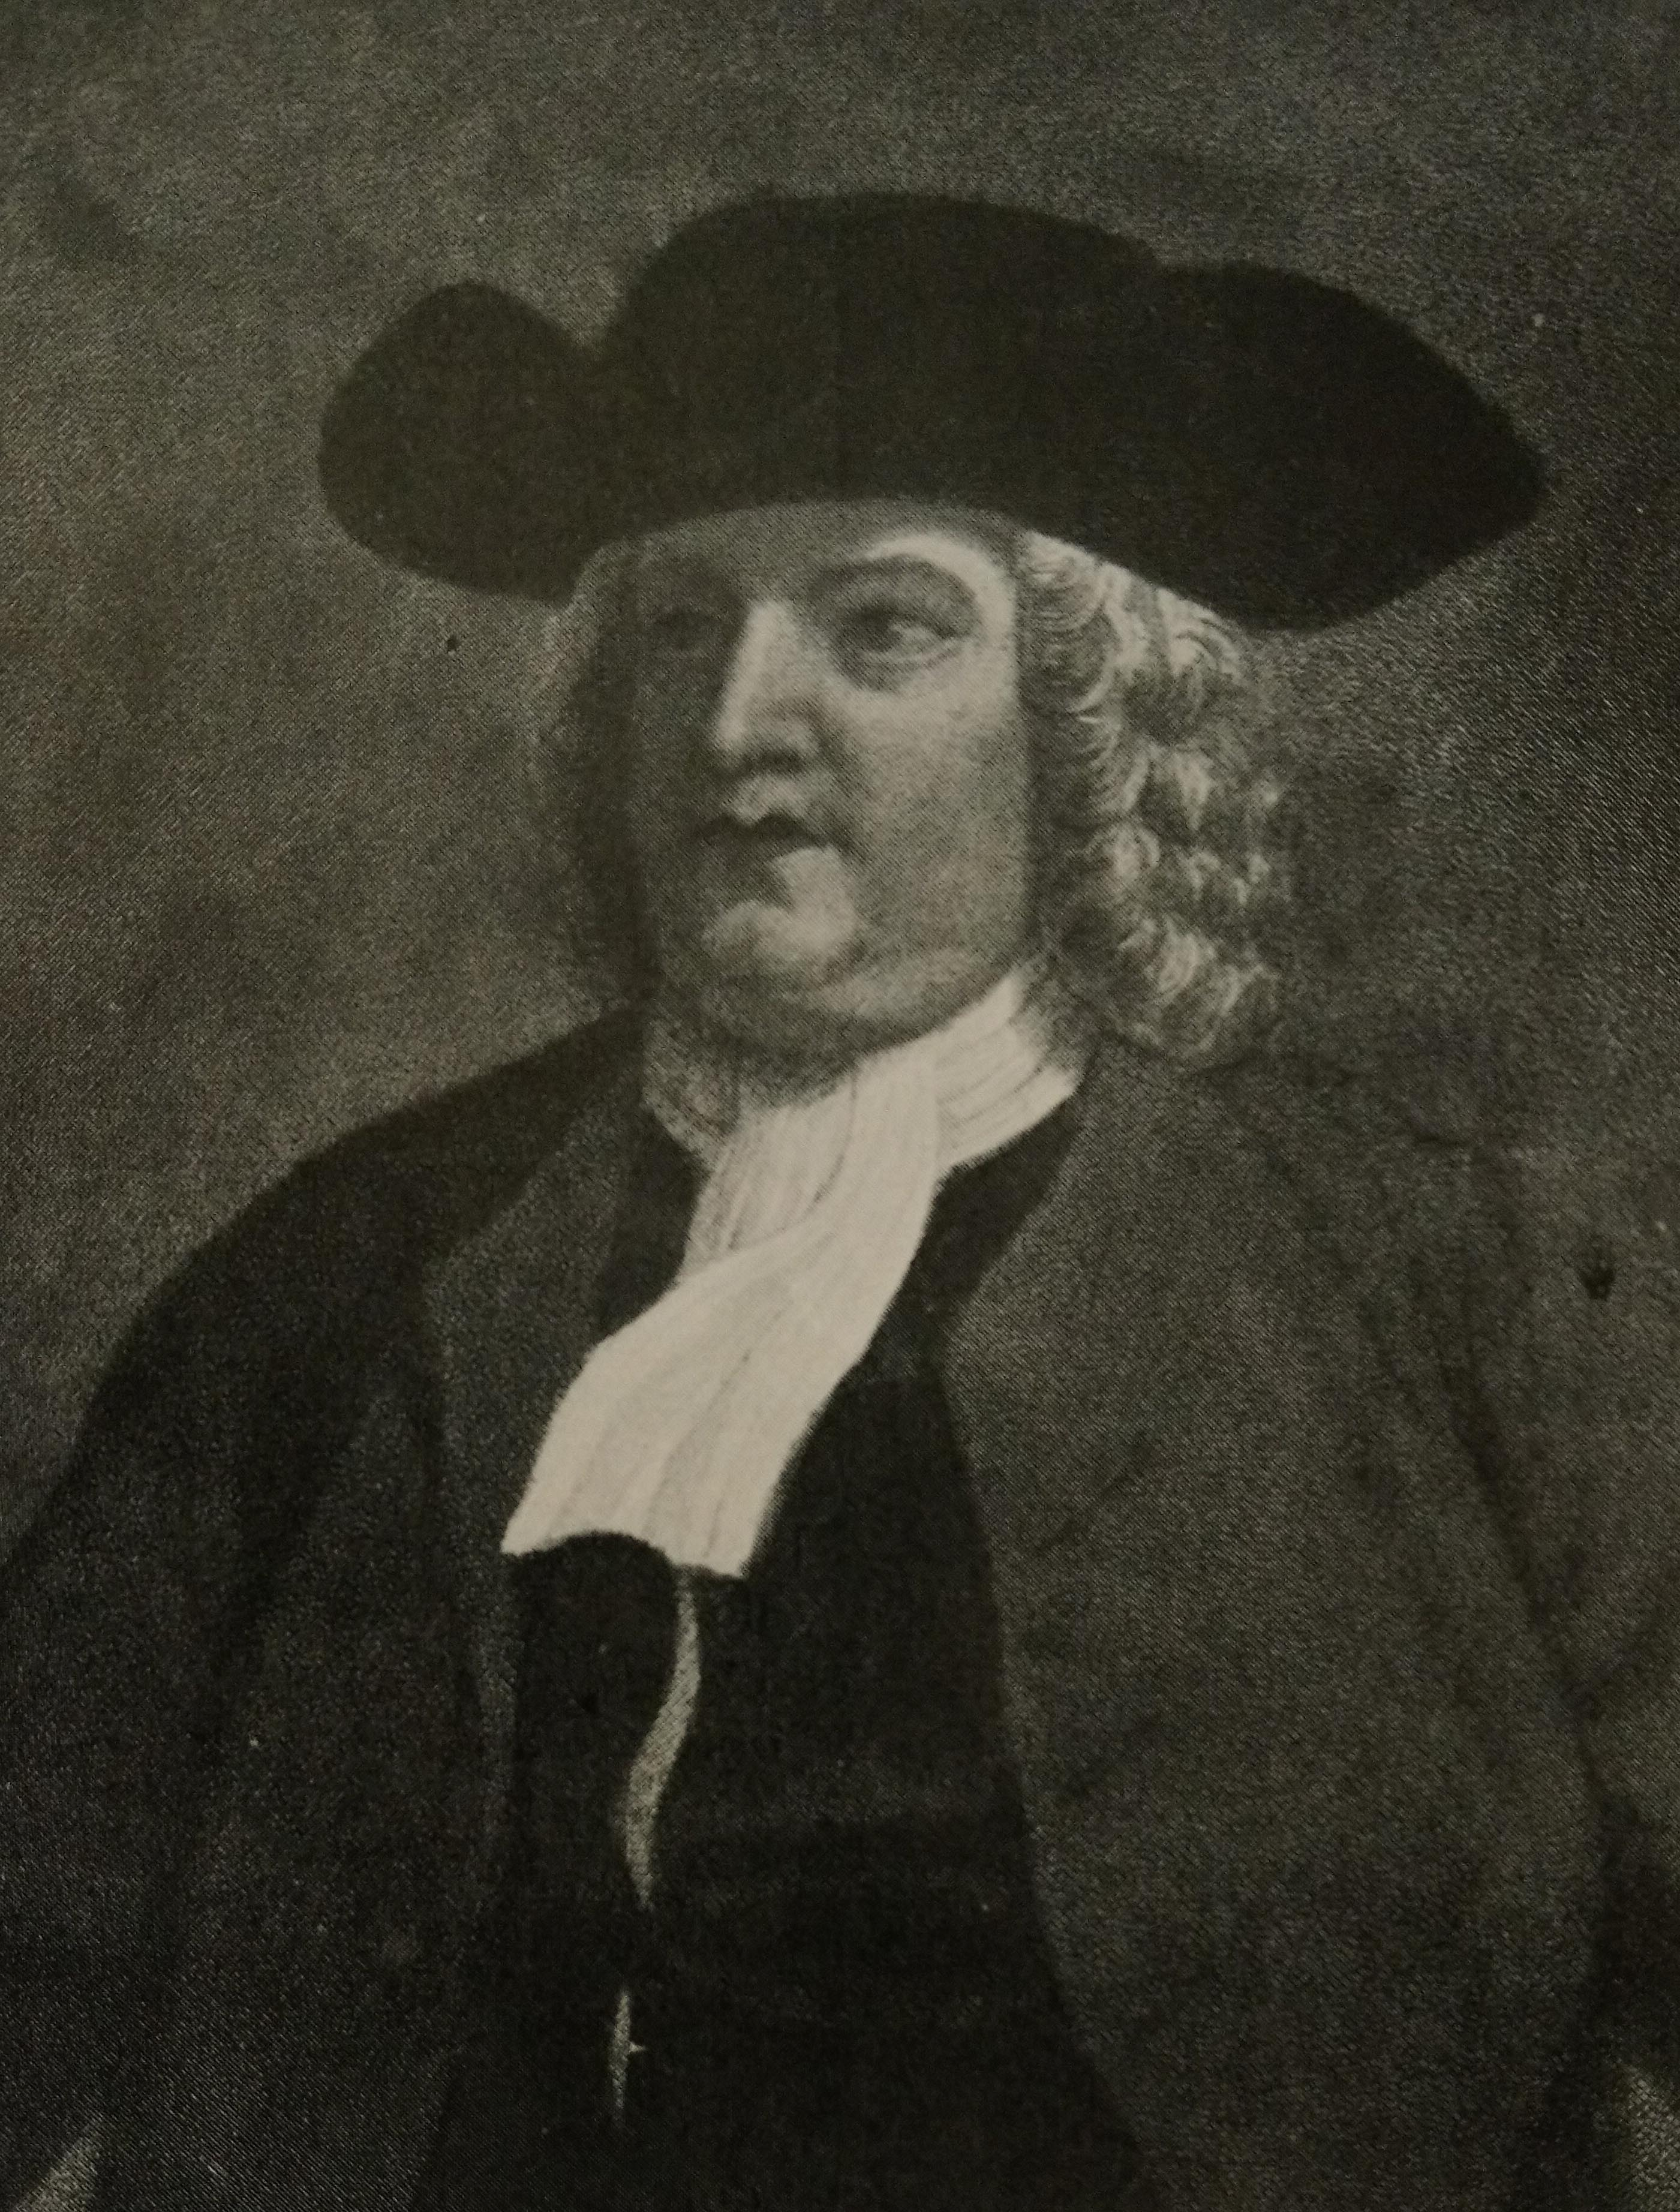 Copy of image of William Penn, wearing a black tricorner hat, white wig and simple 17th Century clothing